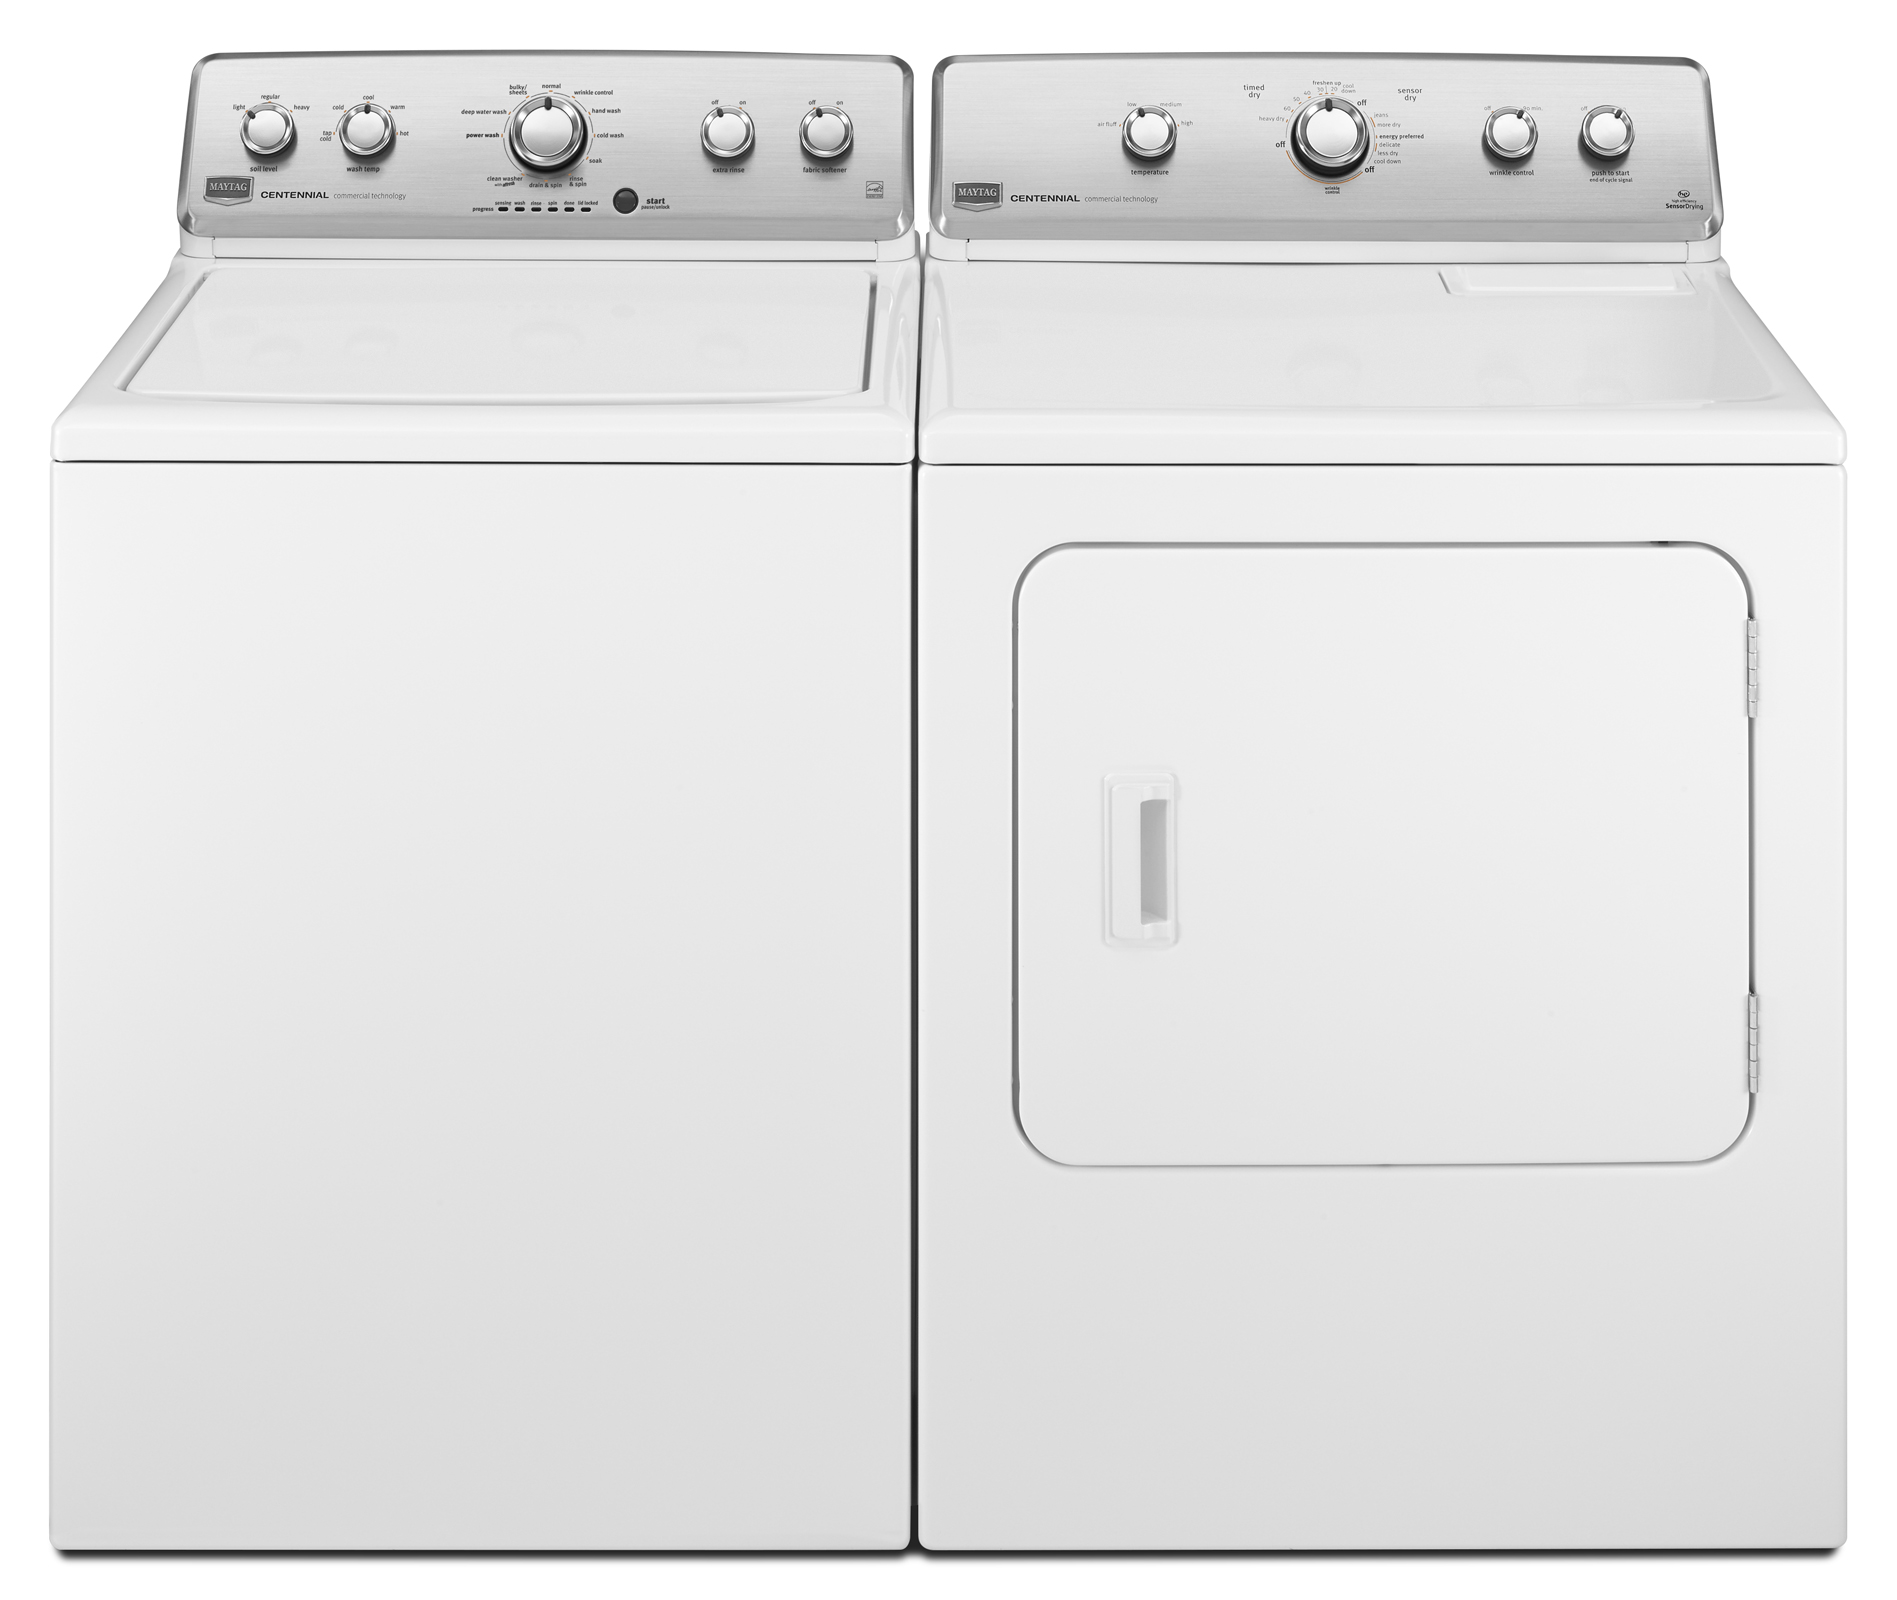 Maytag 3.8 cu. ft. Centennial® HE Top-Load Washer w/ Cold Wash Cycle - White